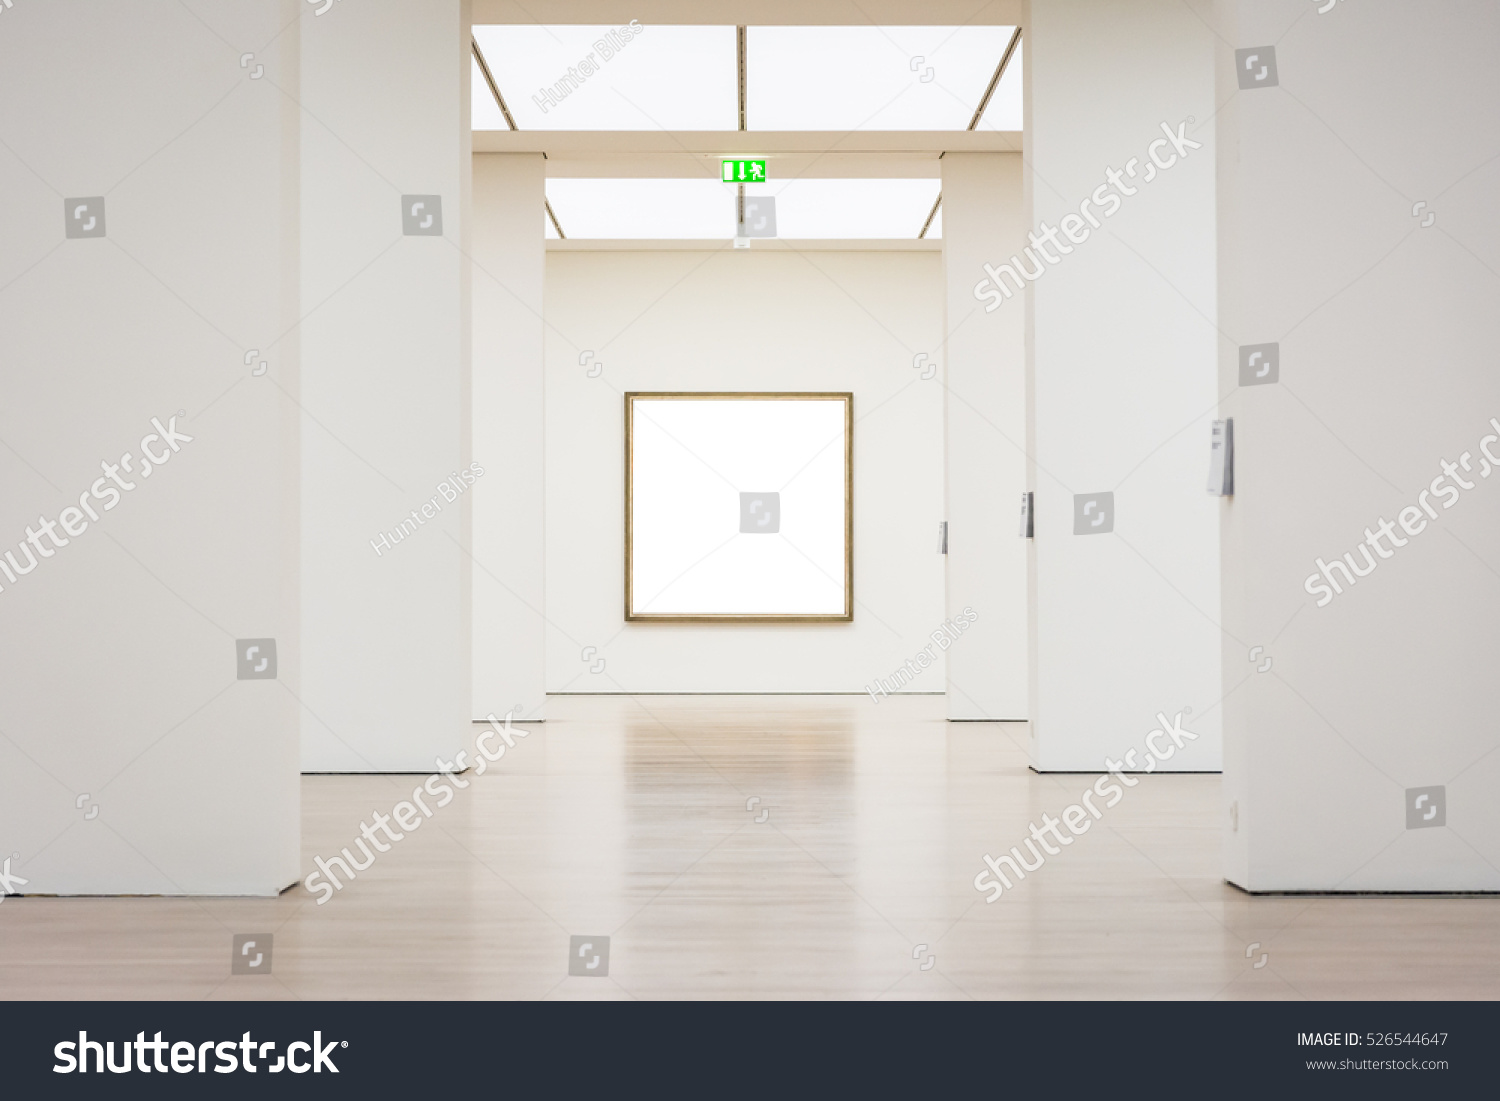 Modern Art Museum Frame Wall Clipping Path Isolated White Vector Illustration Template #526544647